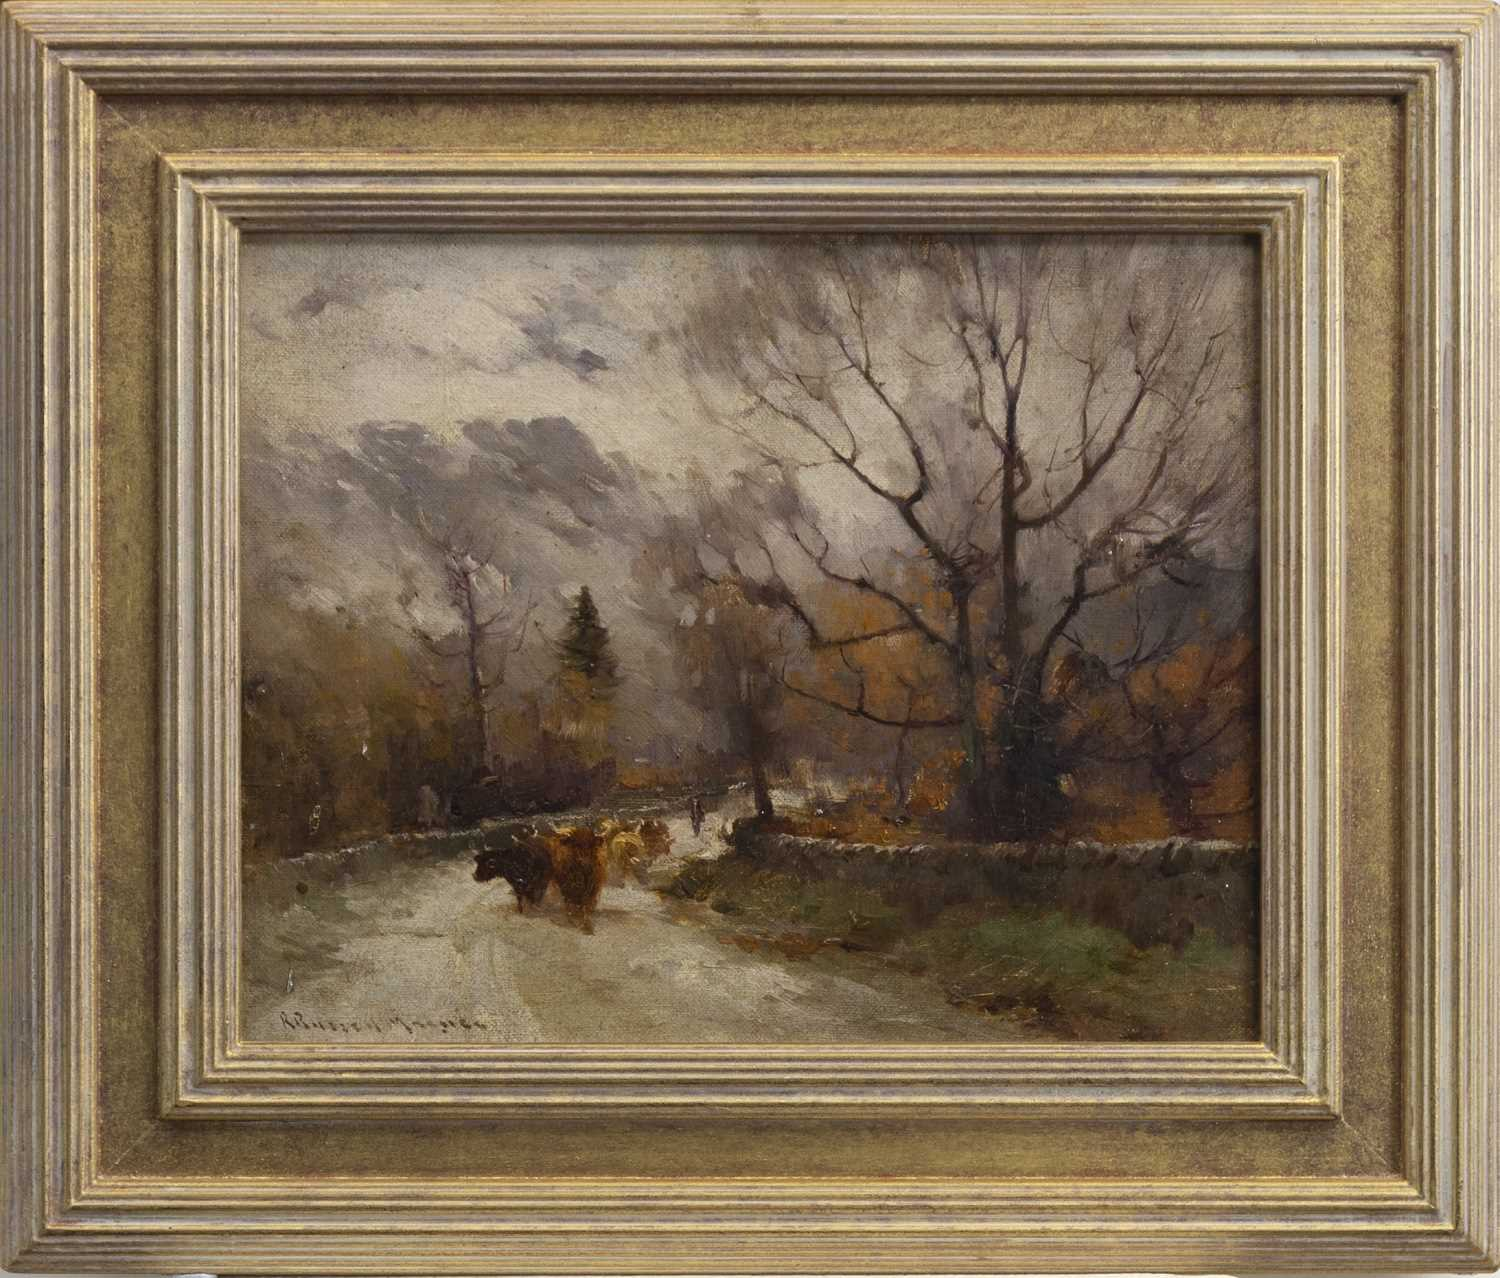 Lot 403-HERDMAN AND CATTLE, AN OIL BY ROBERT RUSSELL MACNEE